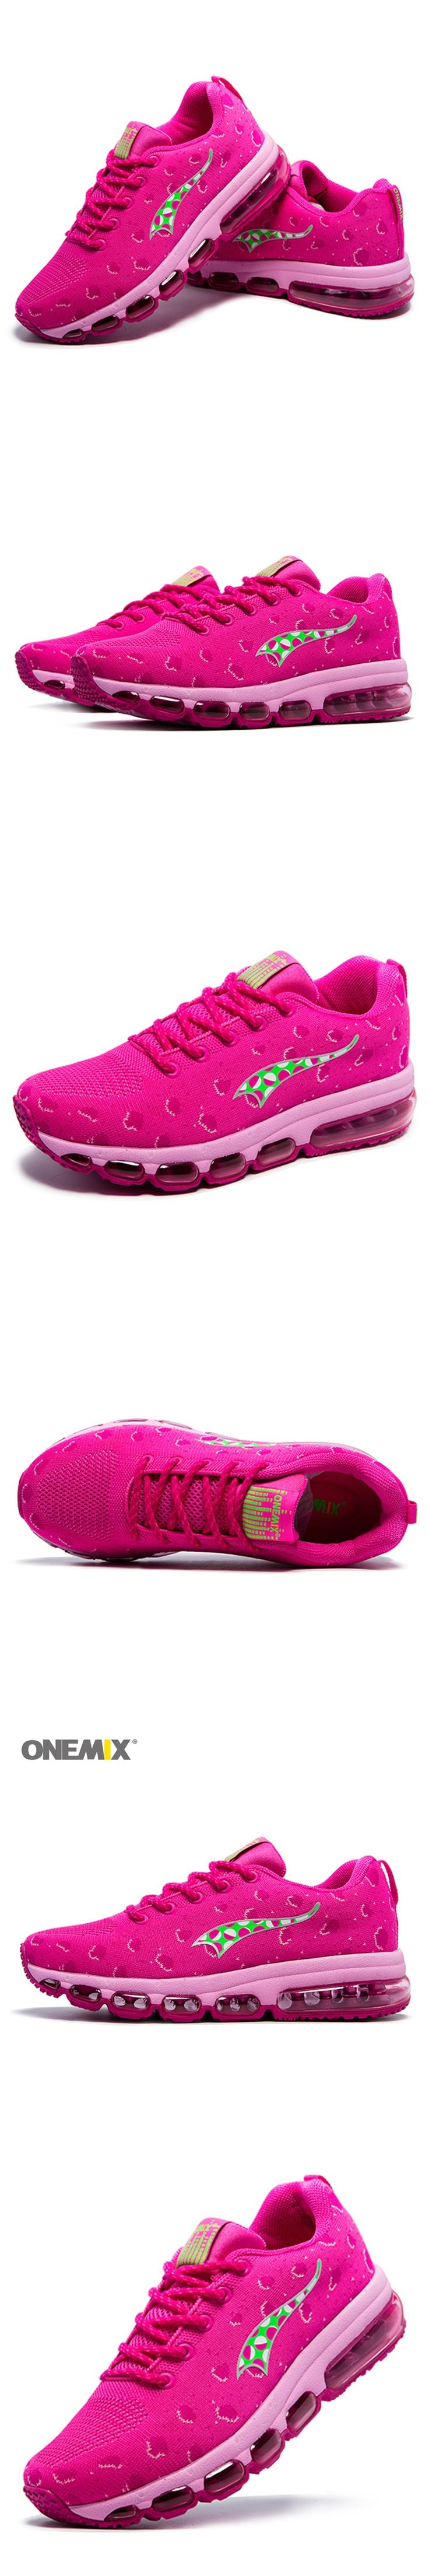 ONEMIX Women 's Sports Running Shoes Knitting Mesh Breathable and Lightweight Outdoor Sports Jogging Shoes EU 35-40 1183